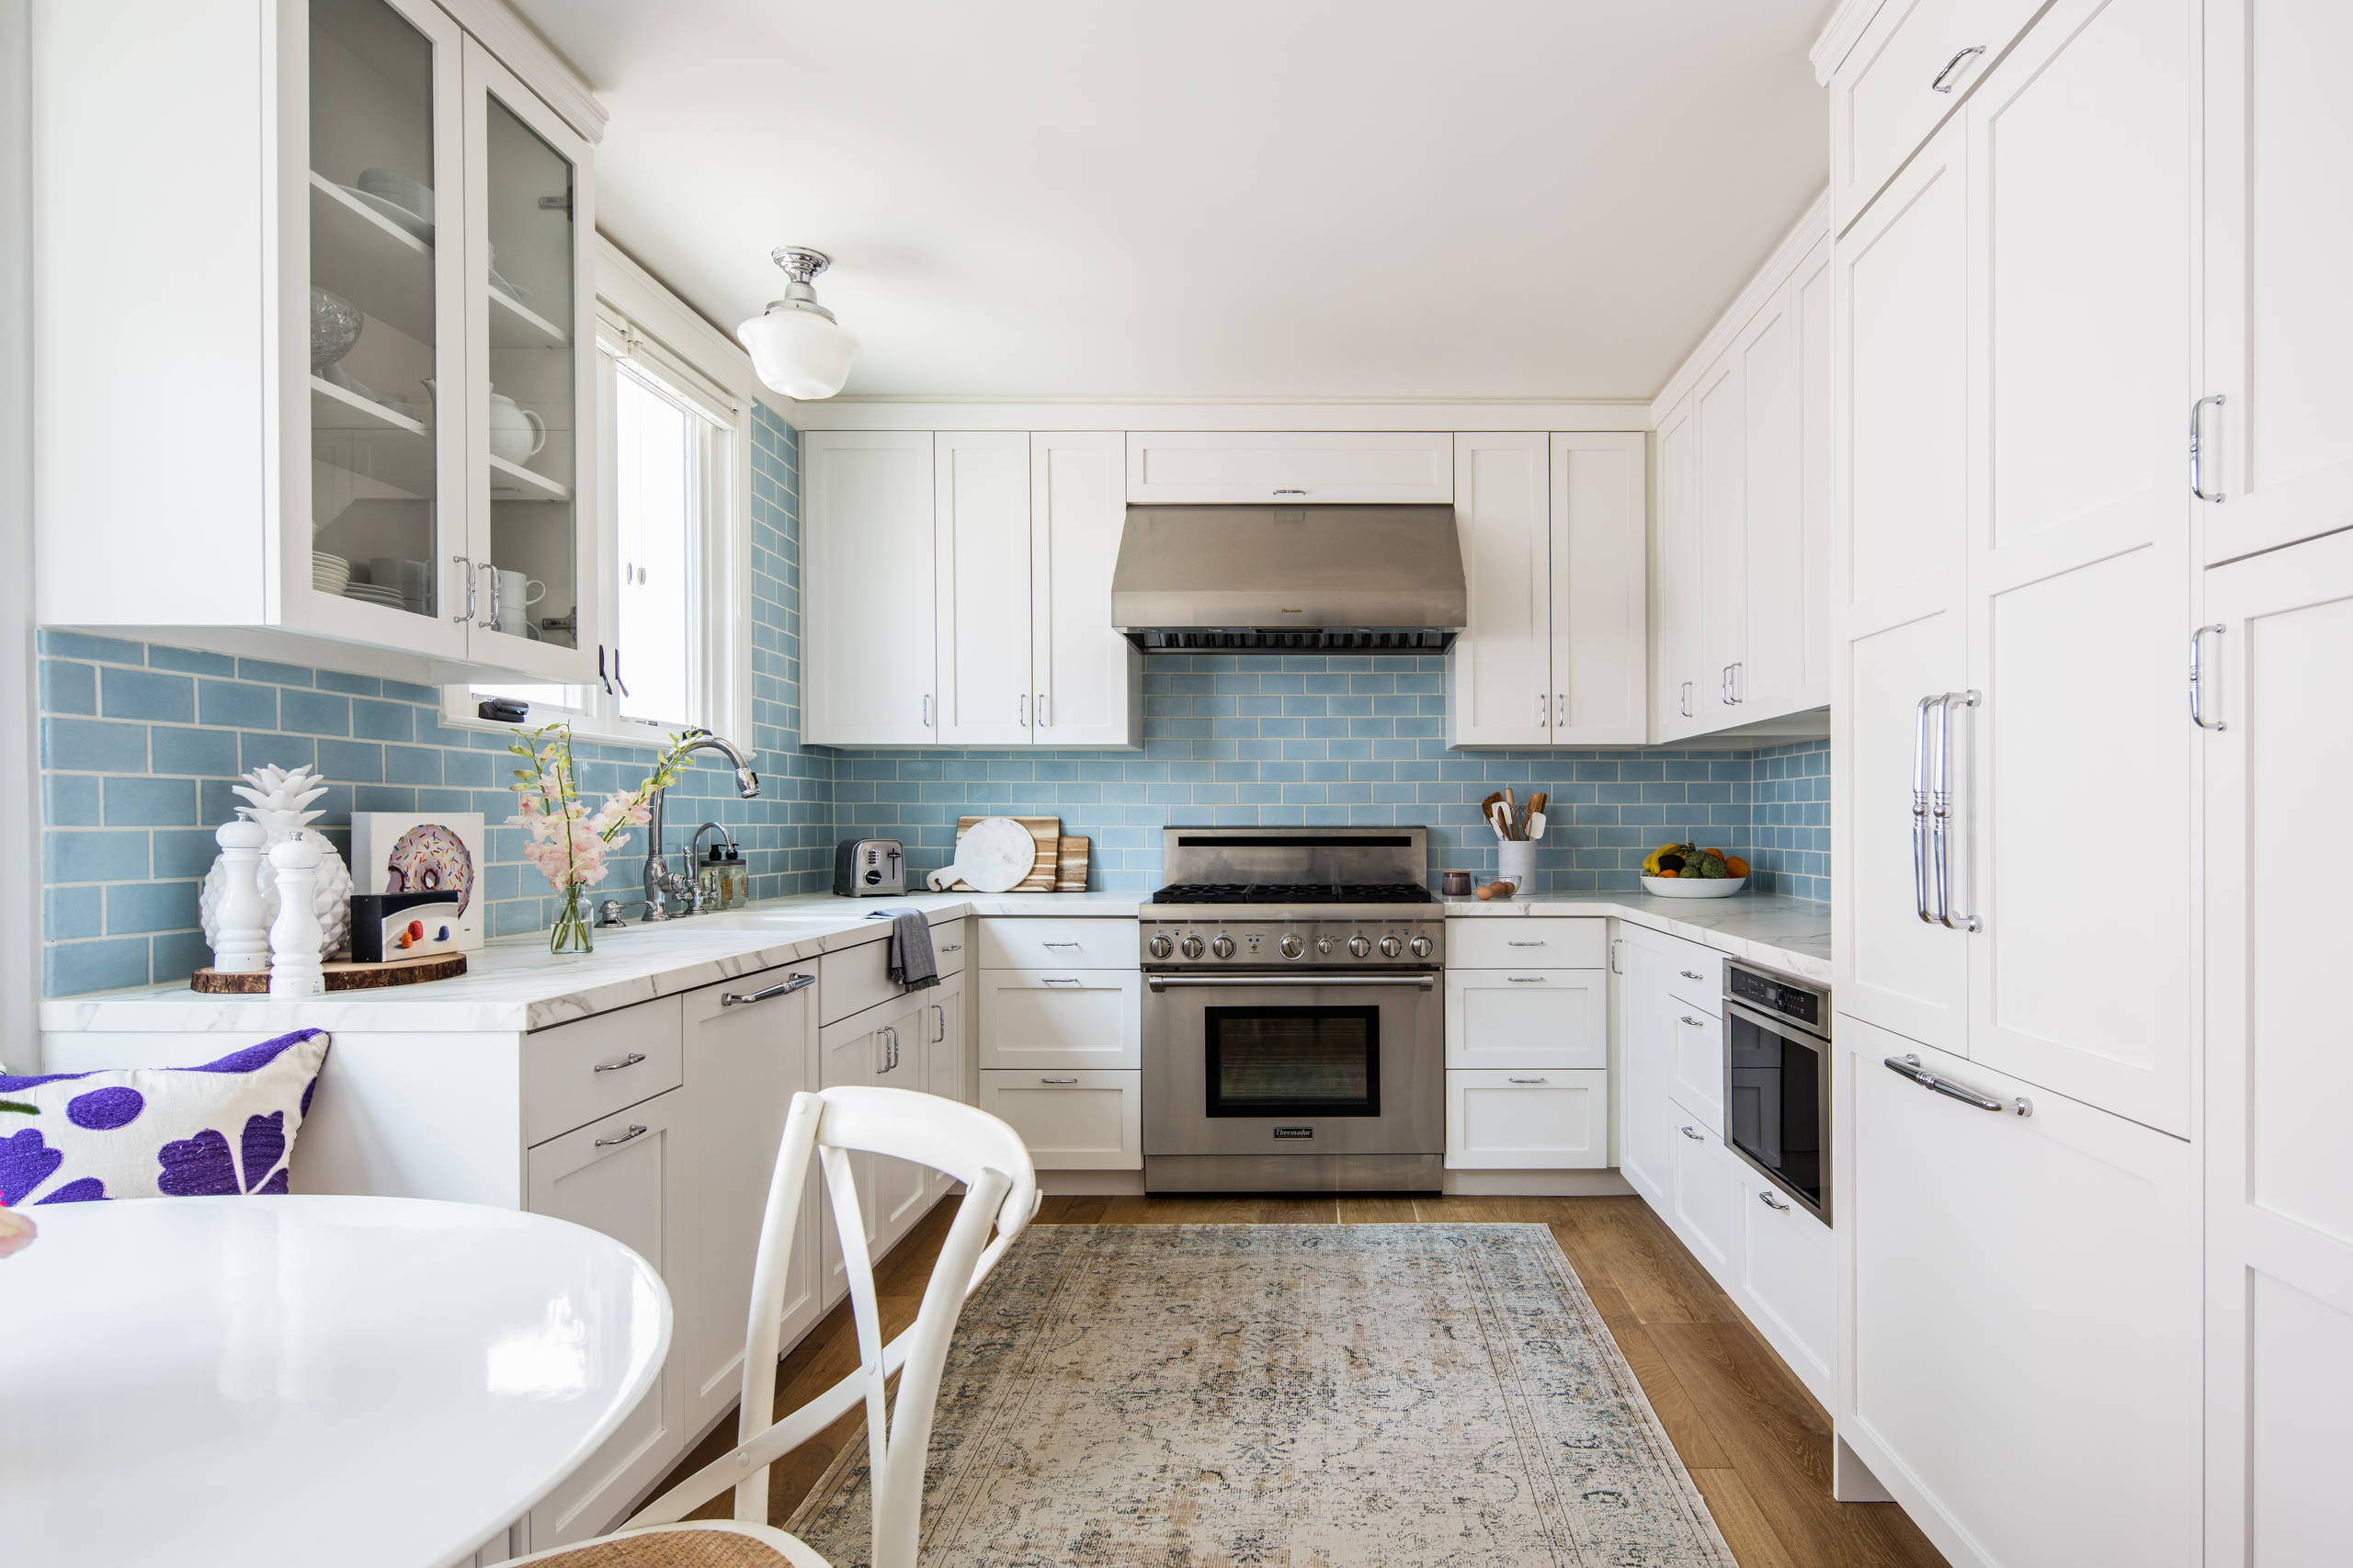 75 Beautiful Small Coastal Kitchen Pictures Ideas December 2020 Houzz